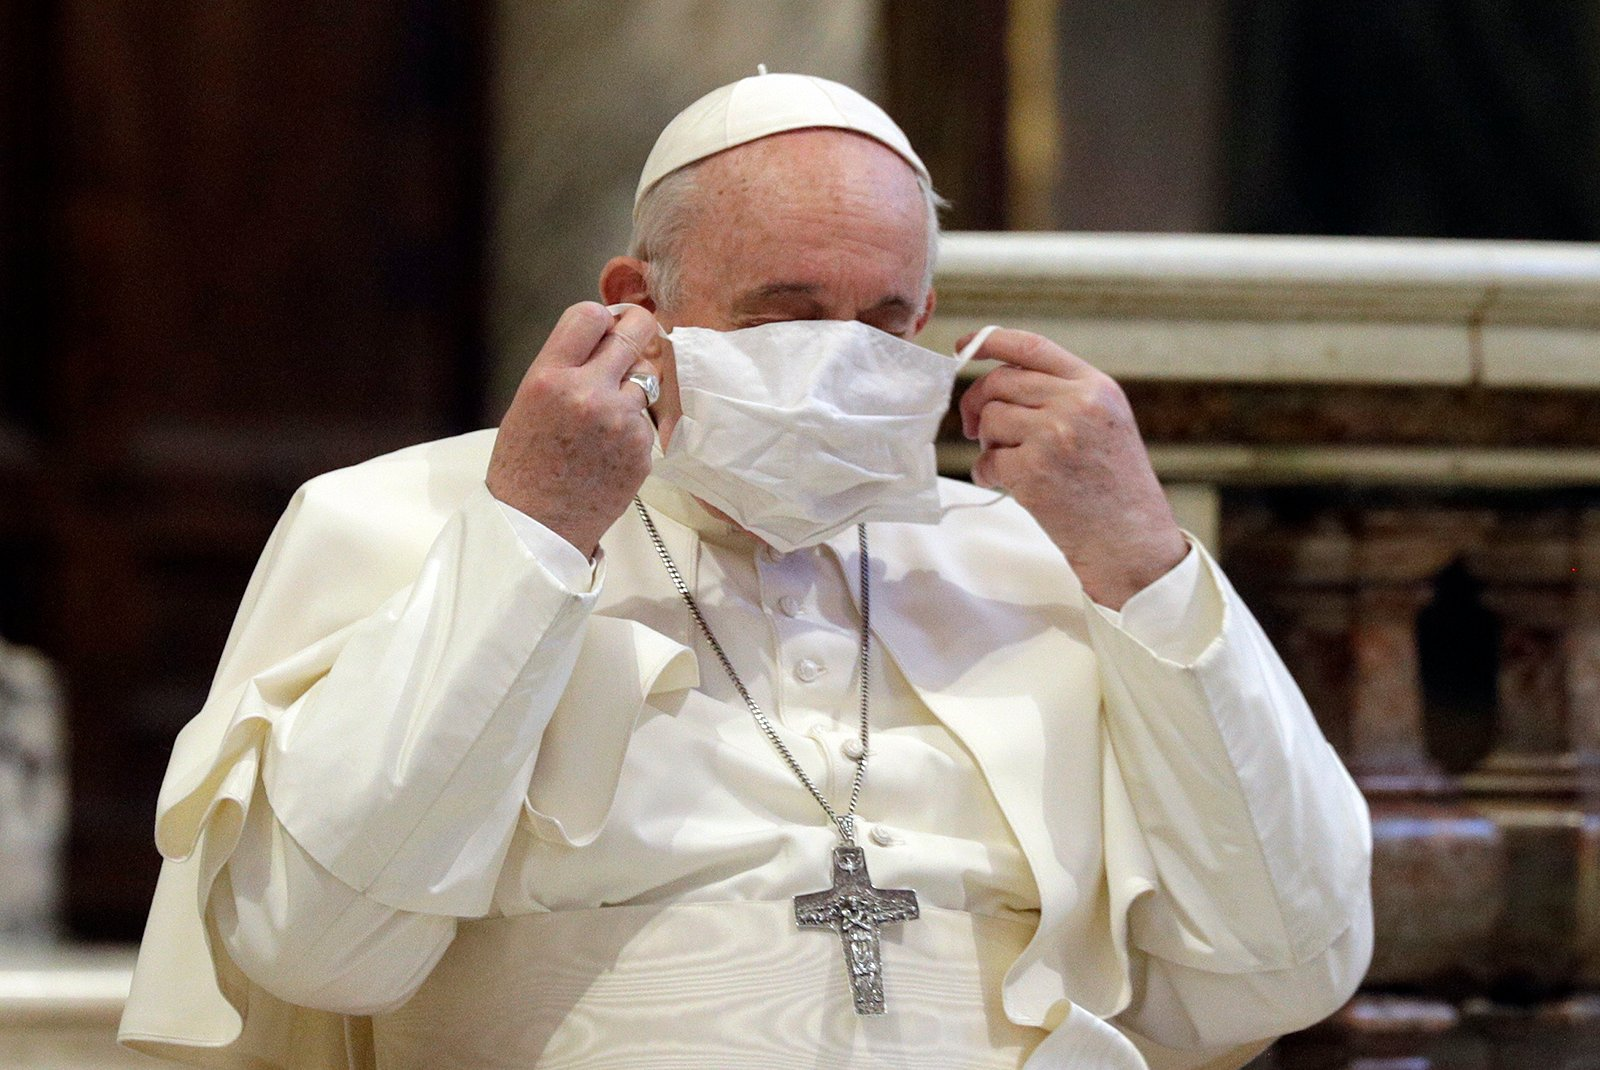 In this Tuesday, Oct. 20, 2020 file photo, Pope Francis puts on his face mask as he attends an inter-religious ceremony for peace in the Basilica of Santa Maria in Aracoeli, in Rome. Pope Francis' decision to forego wearing a face mask has been noticed, with concern, by the commission of Vatican experts he appointed to help chart the Catholic Church's path through the coronavirus pandemic and the aftermath. The Rev. Augusto Zampini, one of the key members of the pope's COVID-19 commission, acknowledged Tuesday that at age 83 and with part of his lung removed, Francis would be at high risk for complications if he were to become infected with COVID-19. (AP Photo/Gregorio Borgia, File)